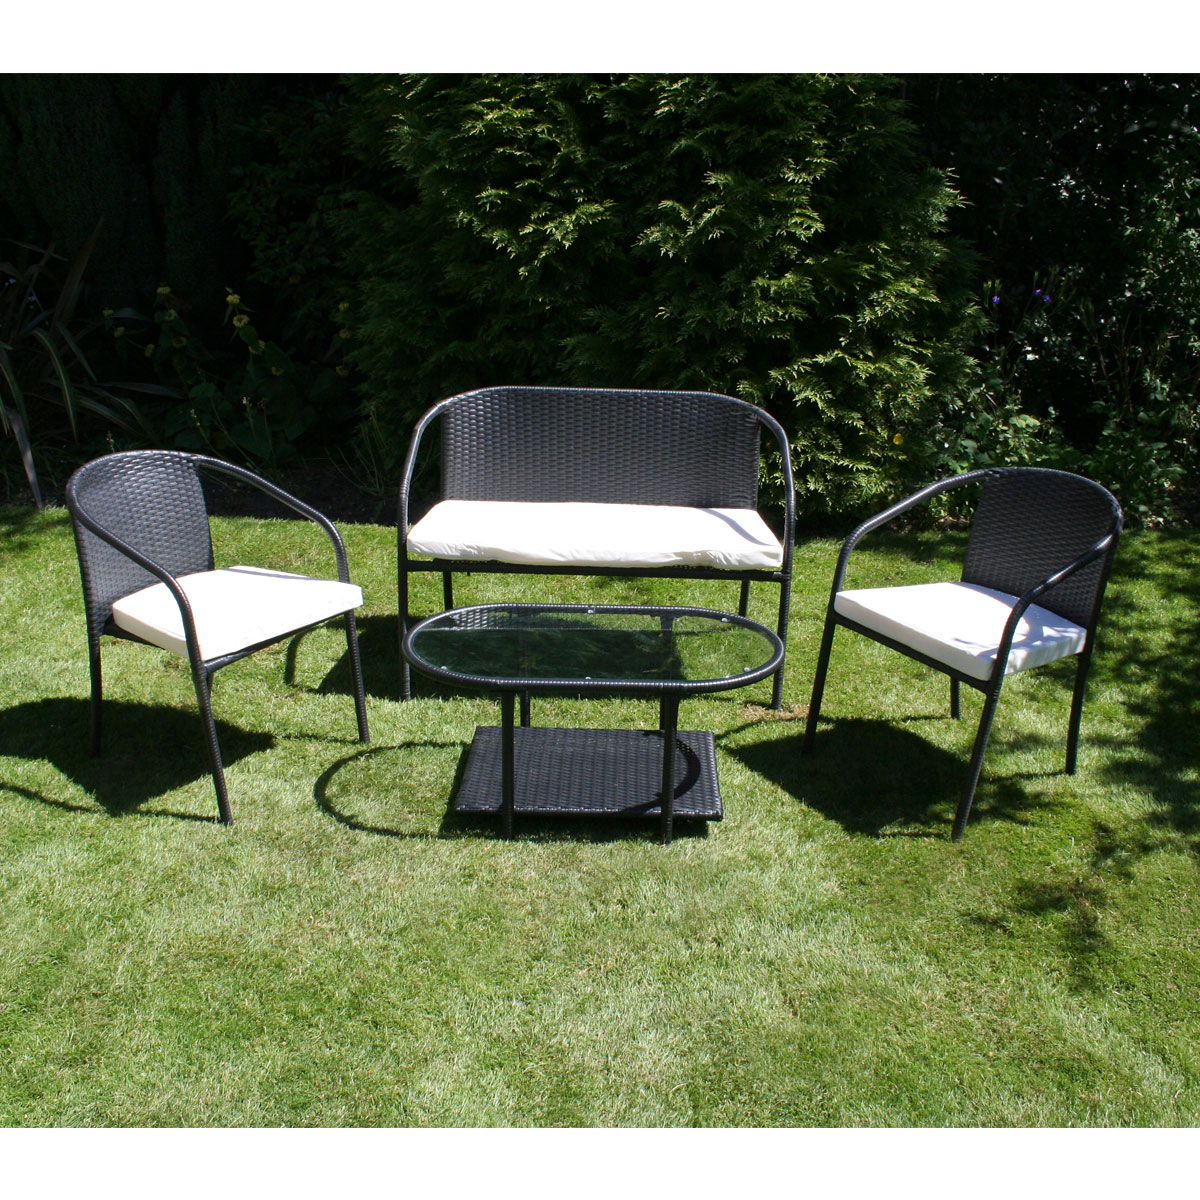 Charles bentley outdoor patio 4 piece sofa black rattan for Patio lounge sets